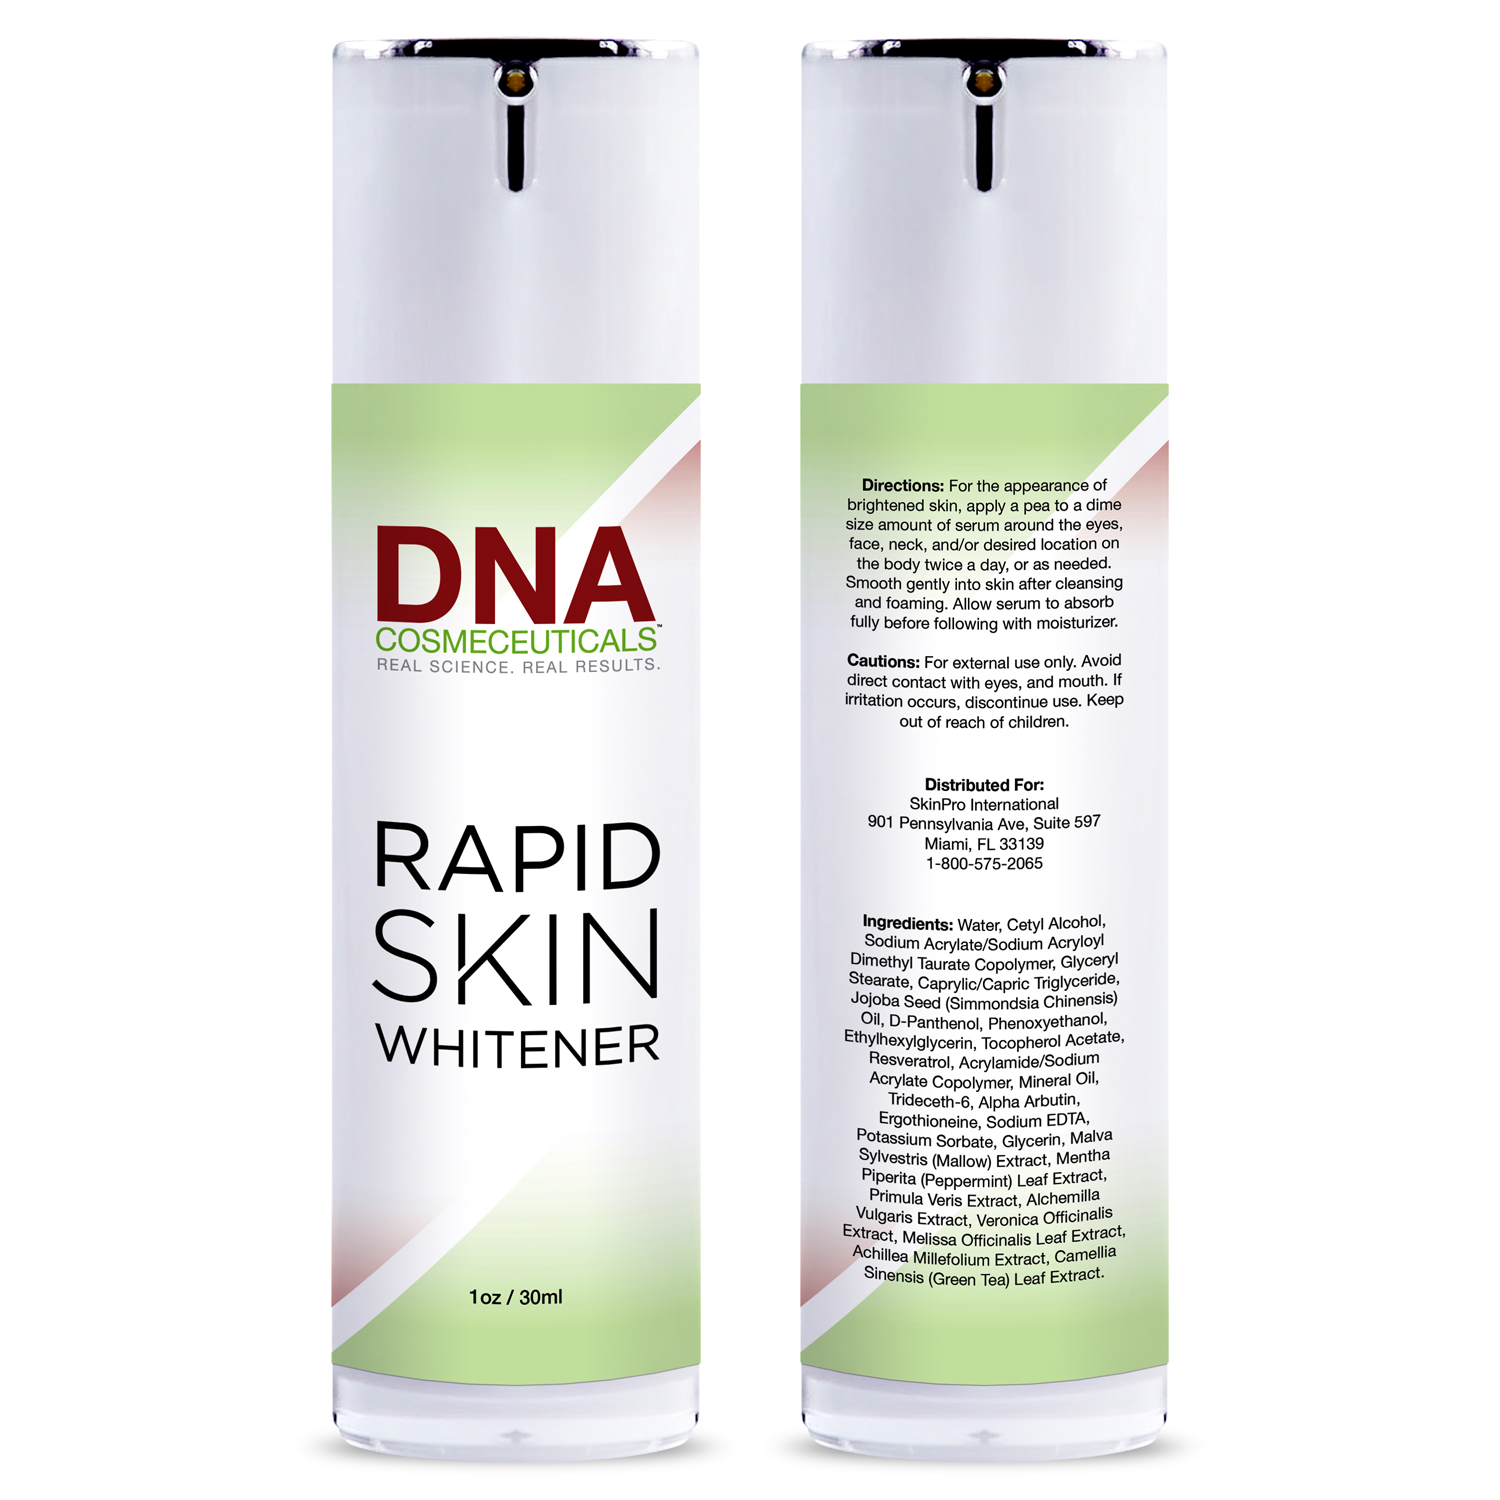 DNA Rapid Skin Whitener